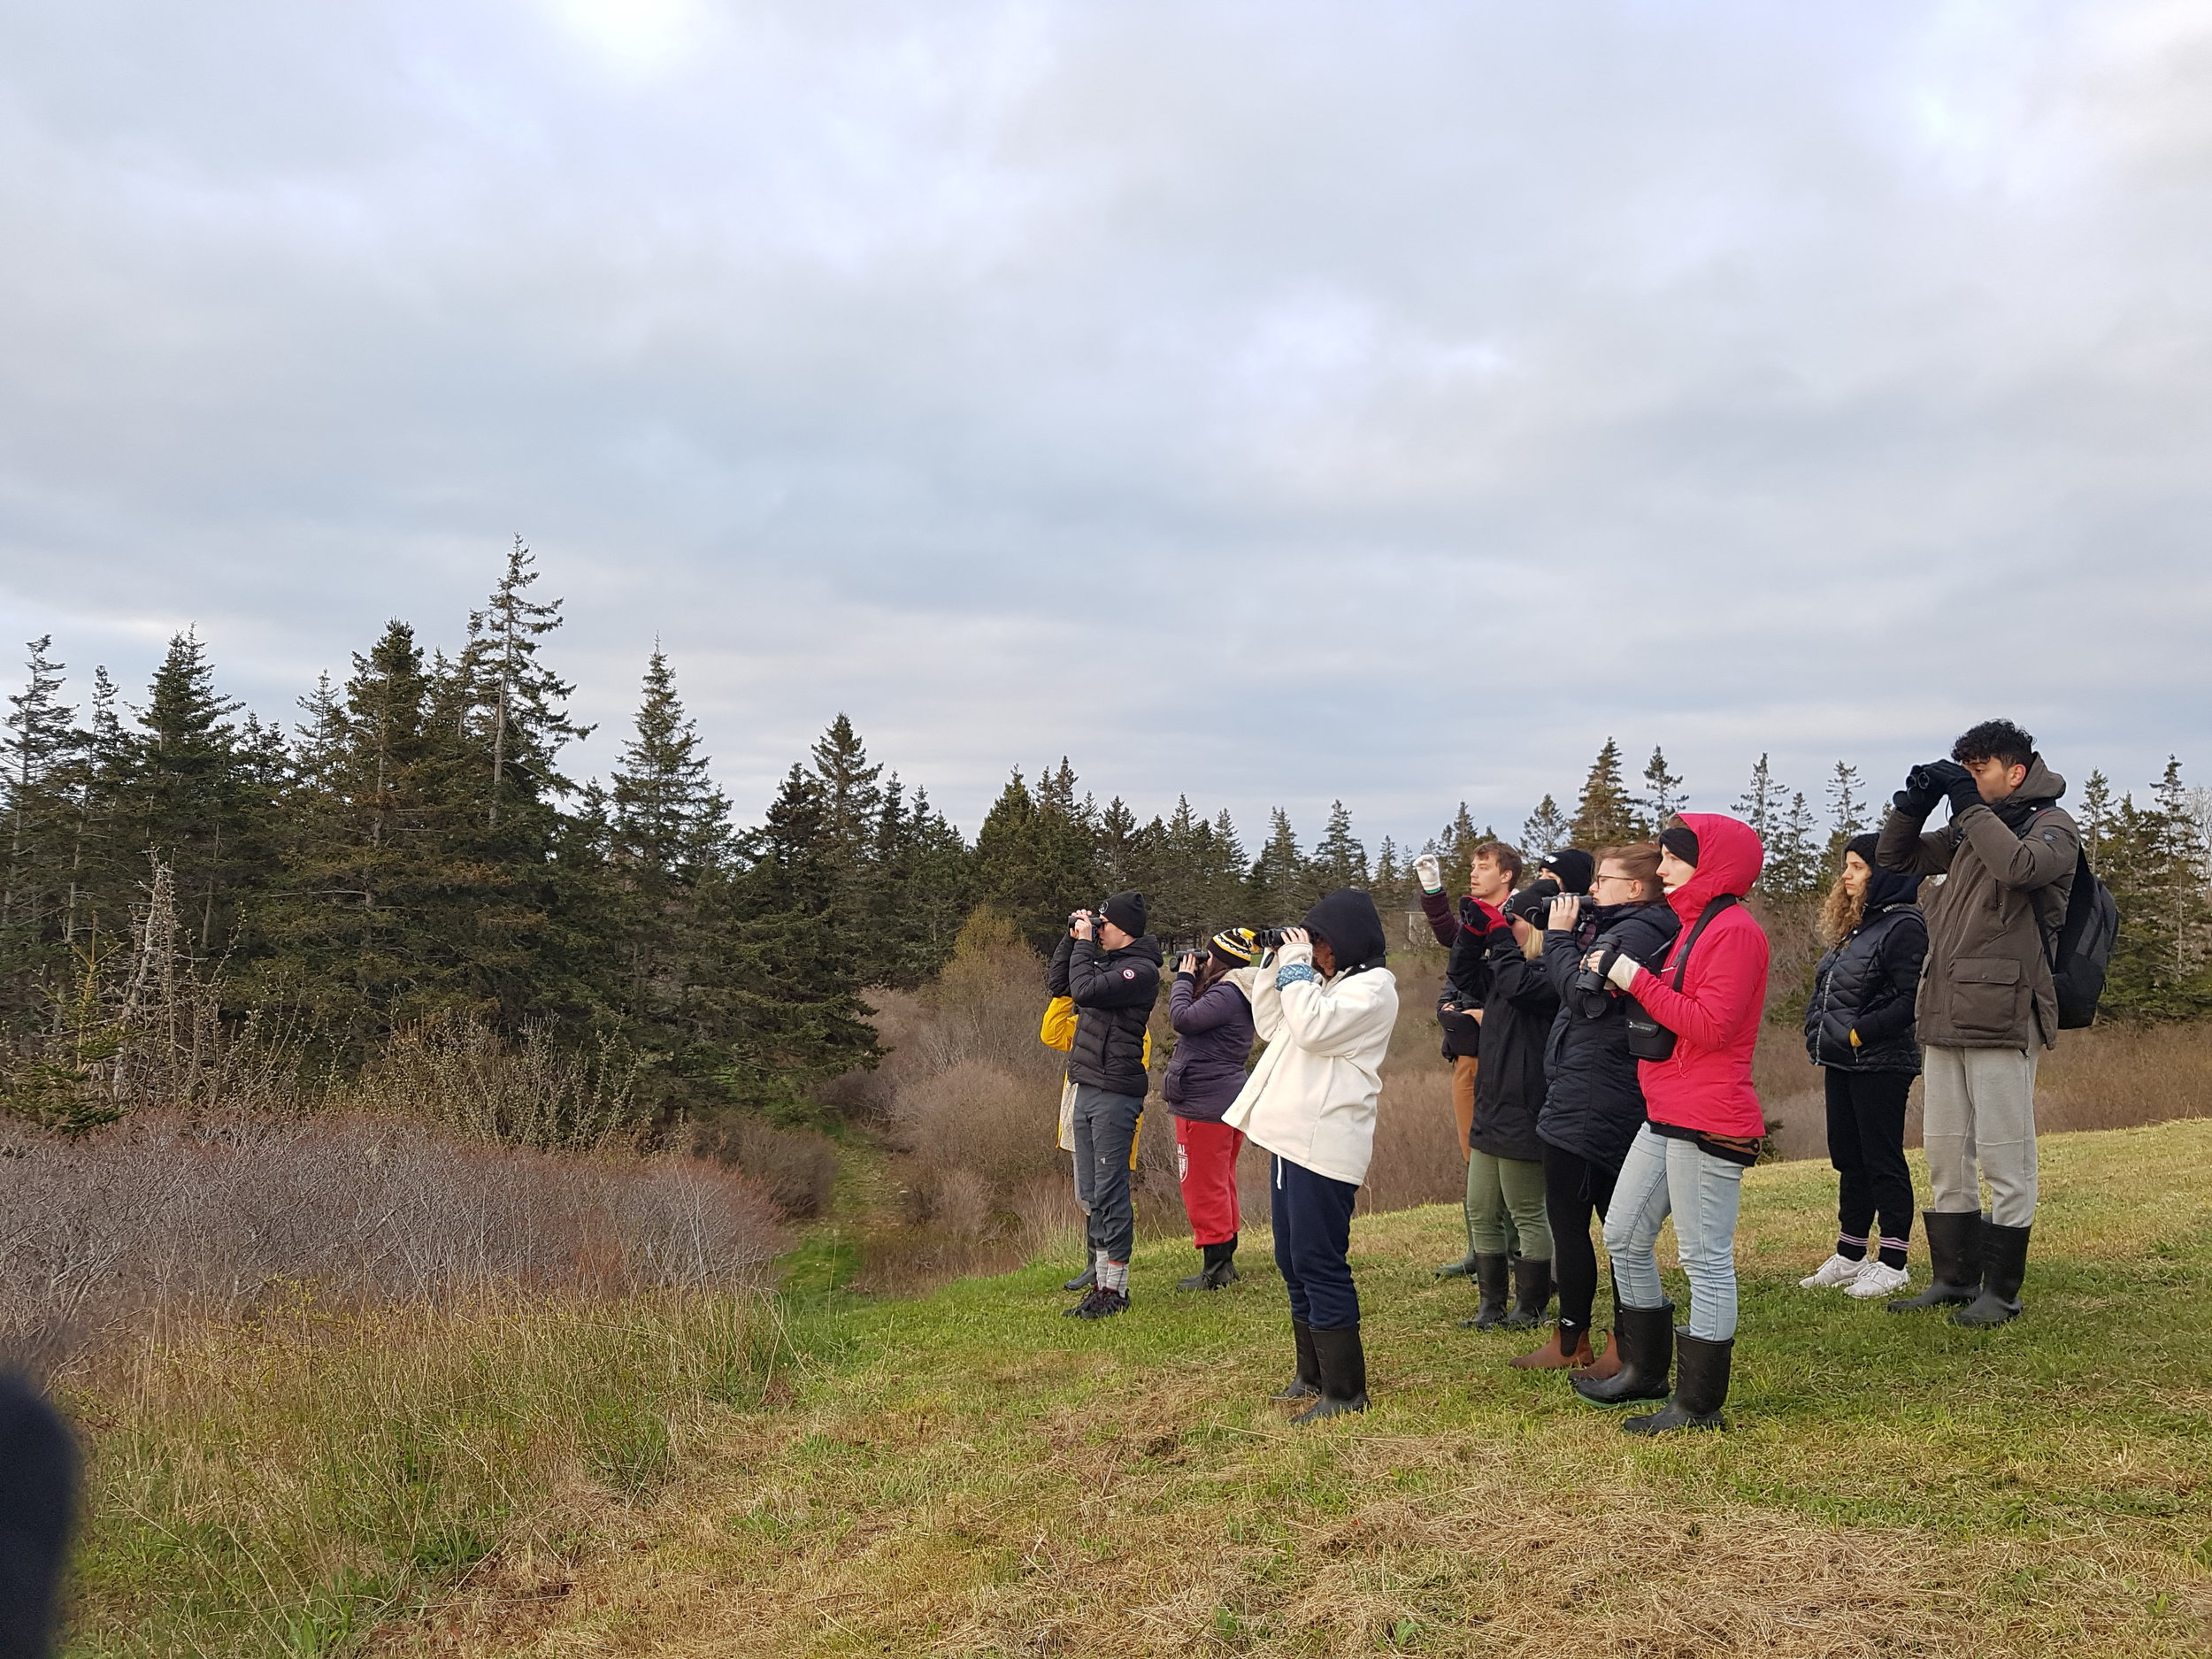 Dalhouse SEASIDE Ornithology students scouting for birds. Photo by Dr. Sarah Gutowsky.